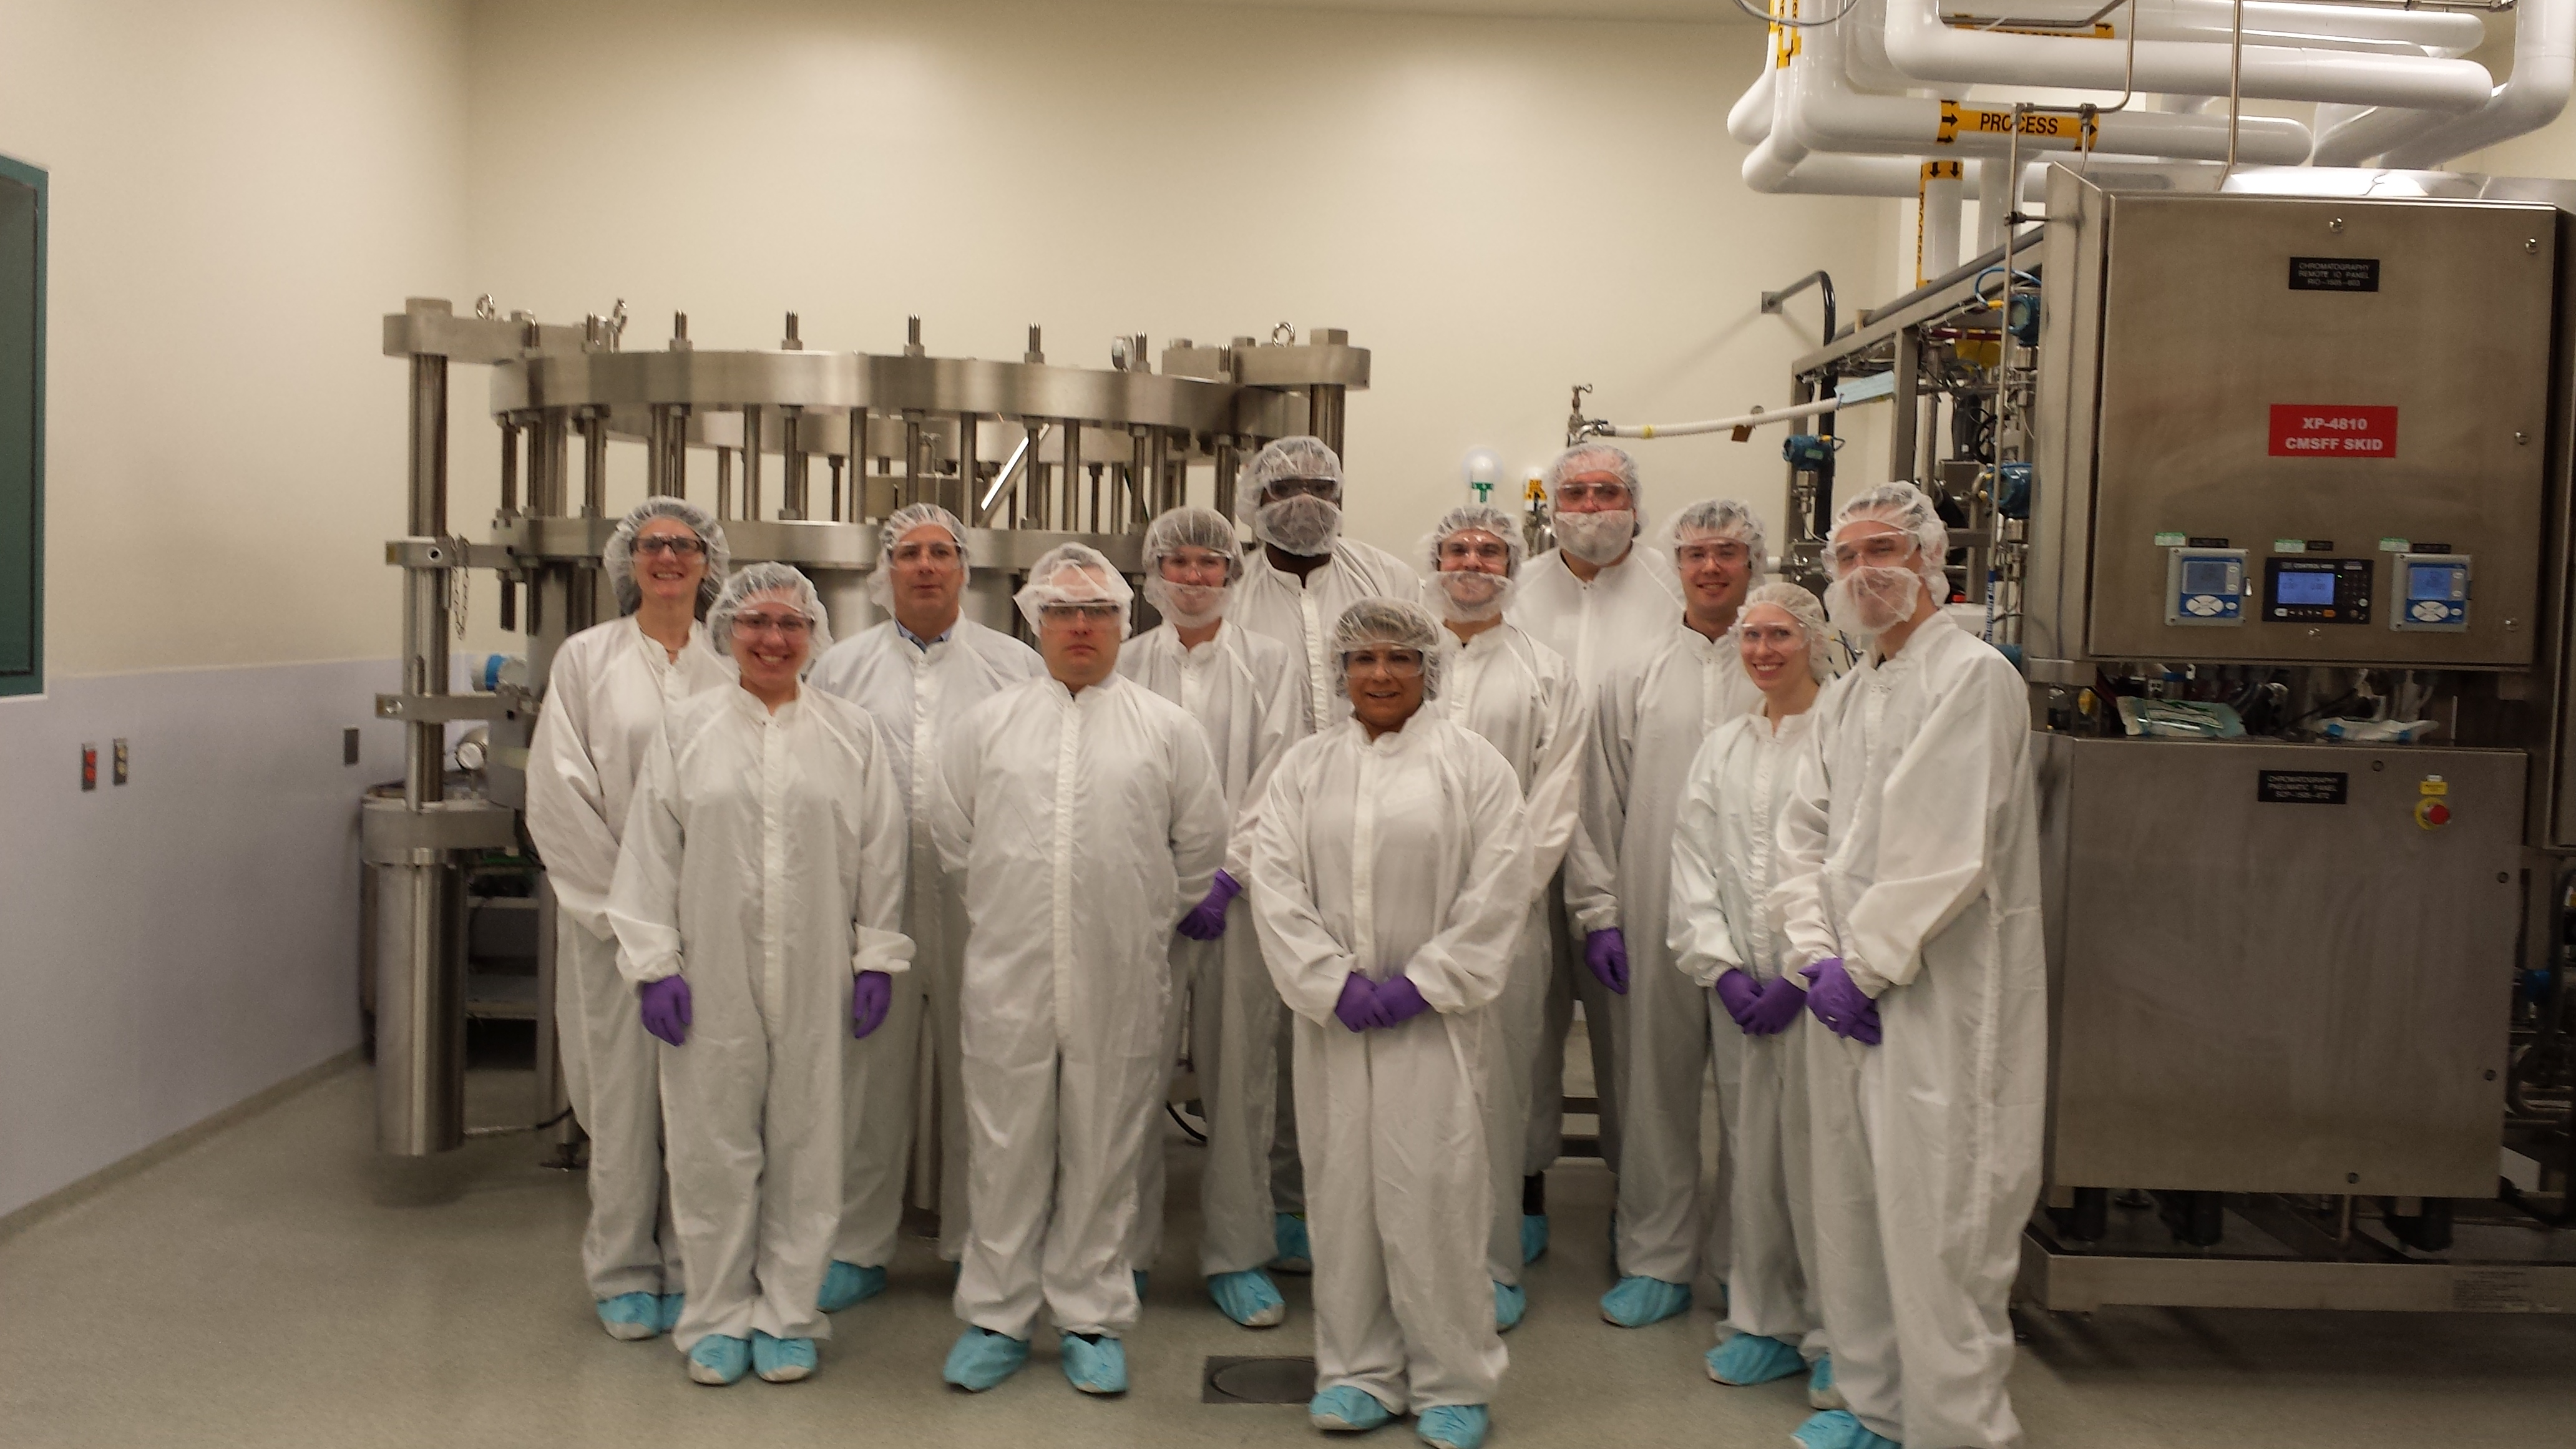 Montgomery County Community College Biomanufacturing students tour the GSK Biopharm facility in King of Prussia, PA.